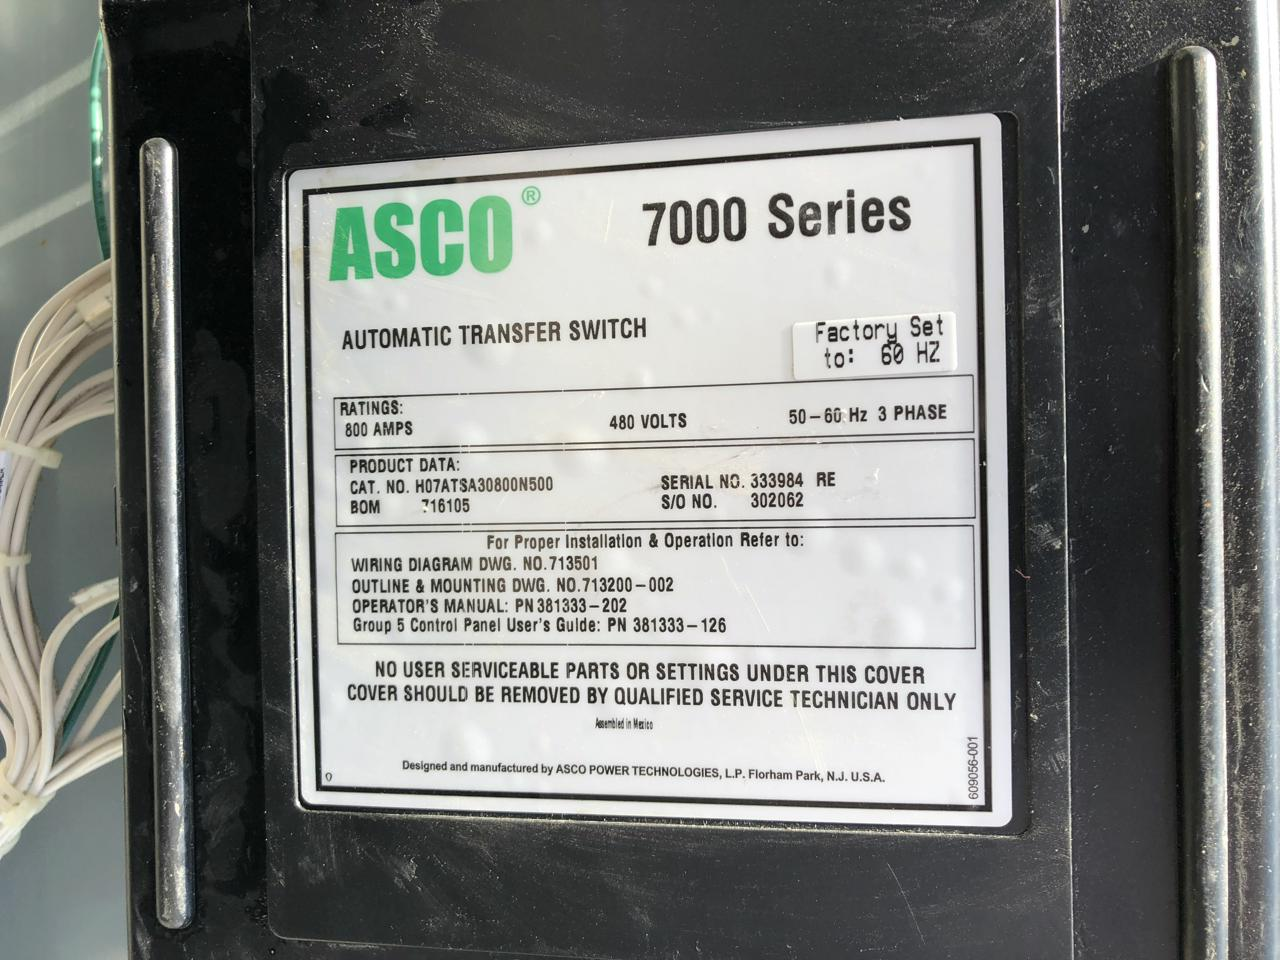 800 Amp Asco 7000 Series Transfer Switch 3 Phase Wiring Diagram